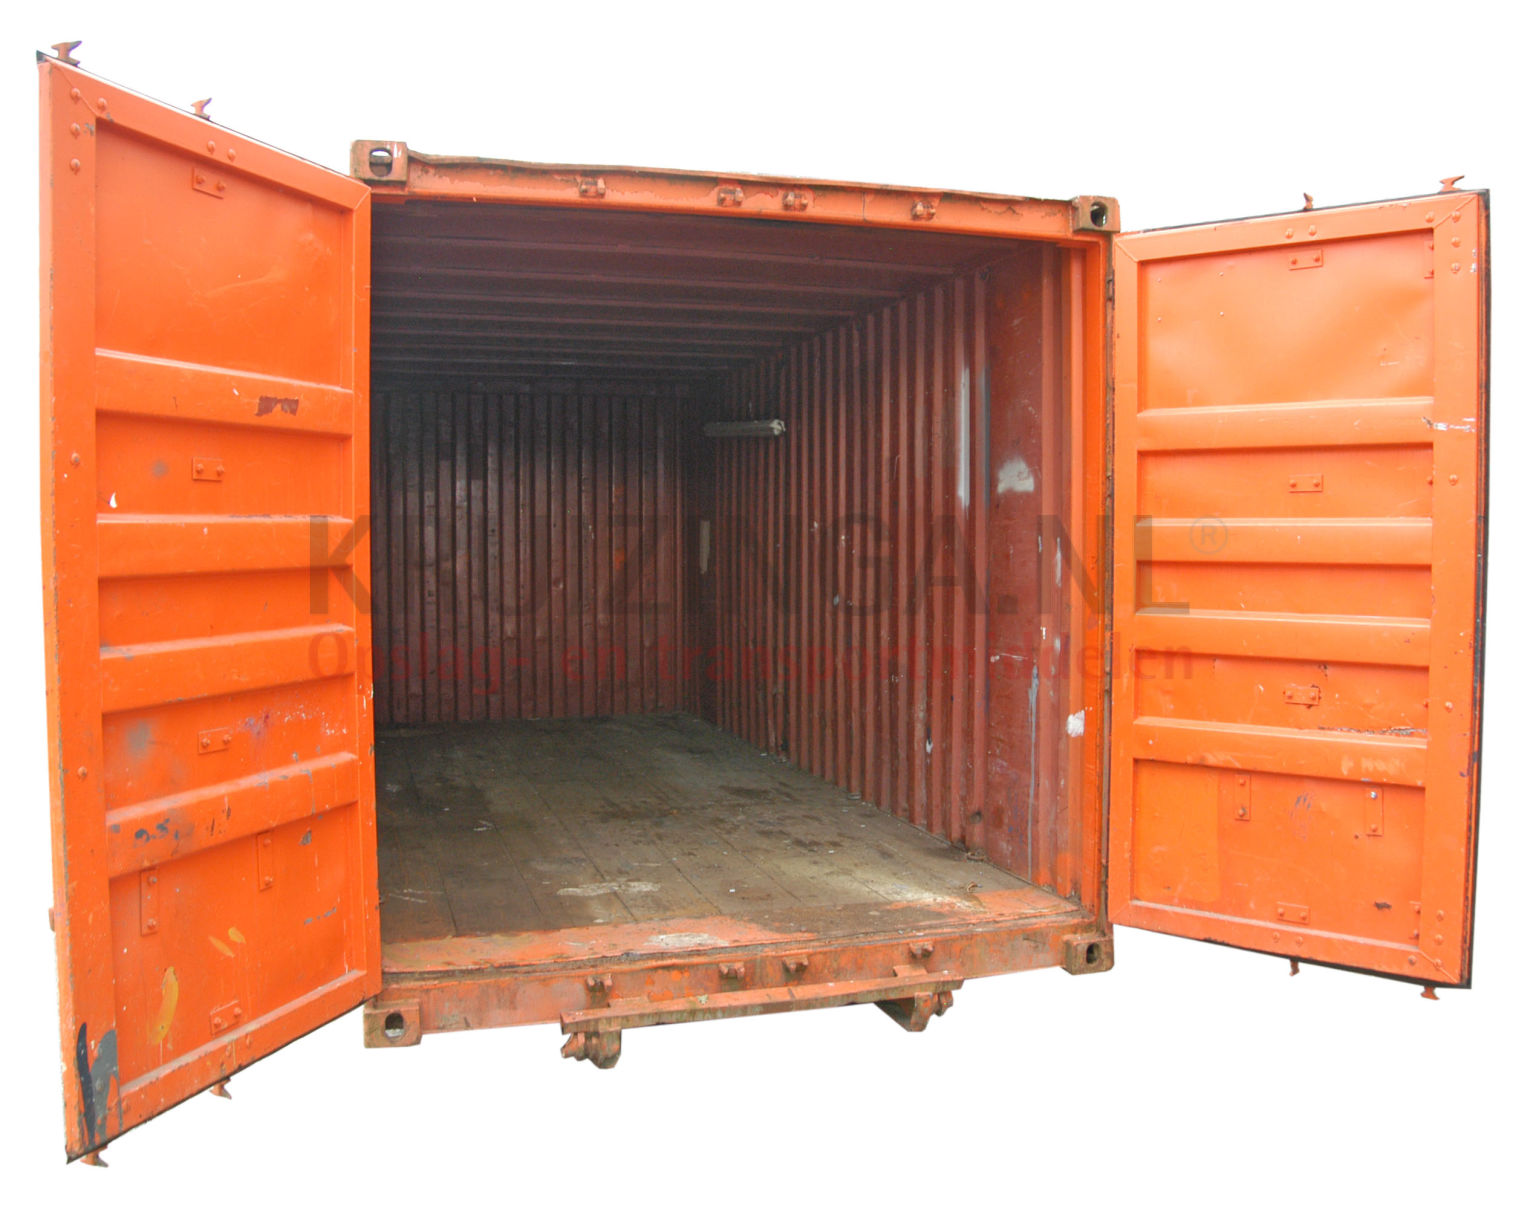 container absetzcontainer 20 fu gebraucht 1900. Black Bedroom Furniture Sets. Home Design Ideas